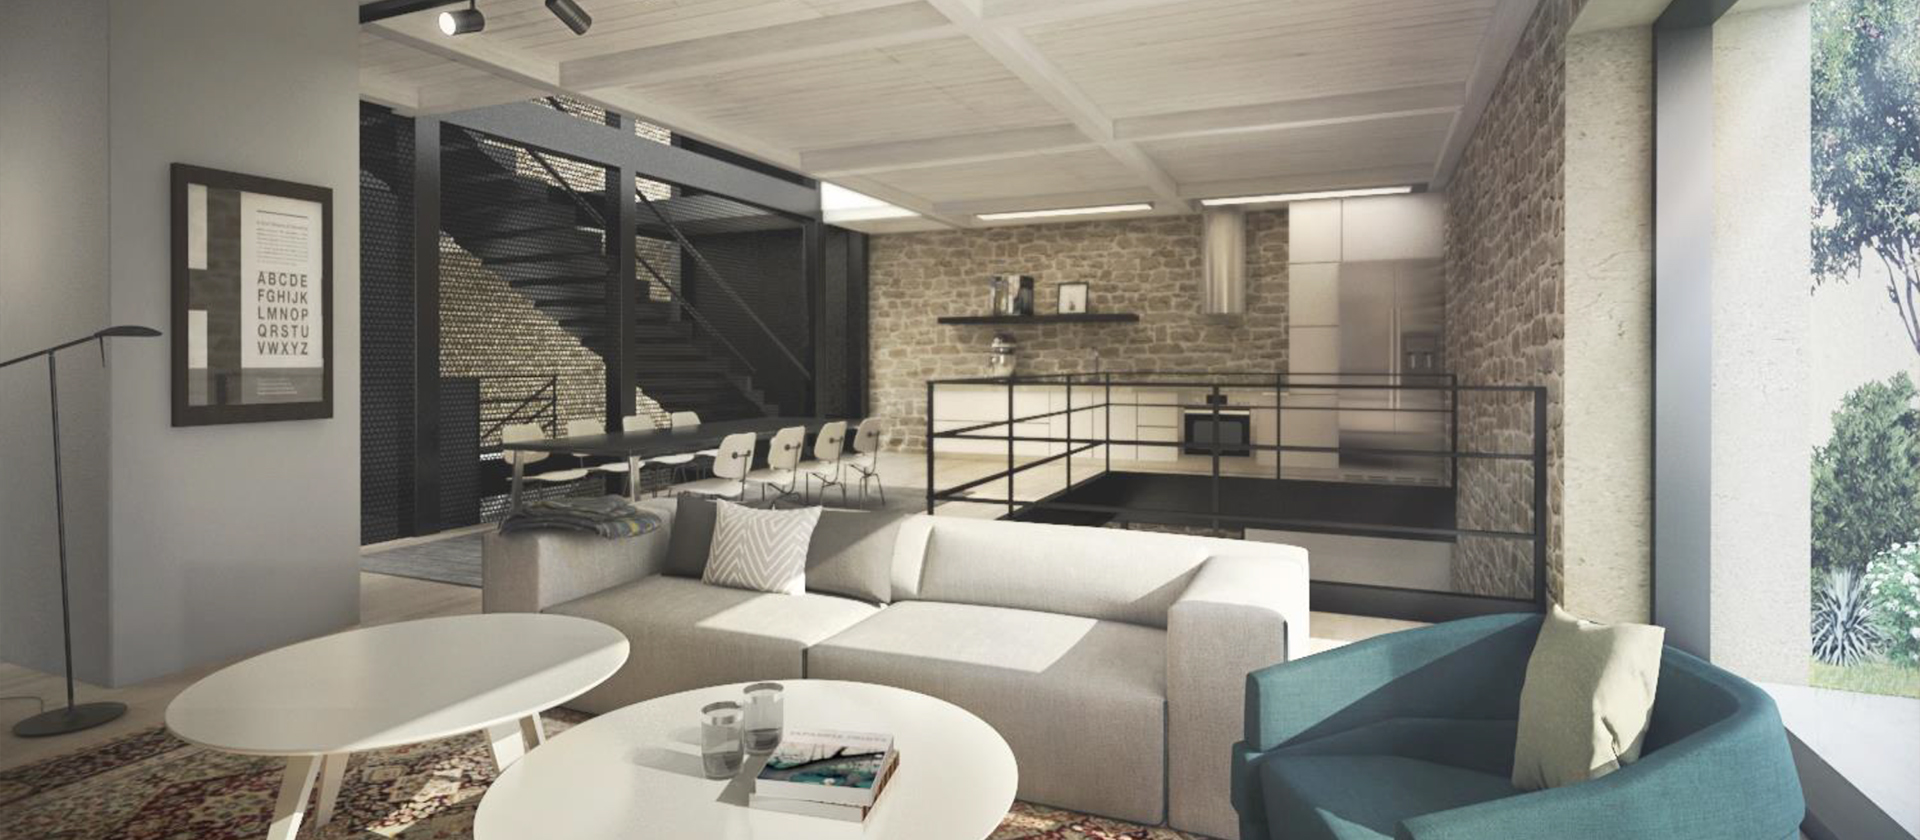 fidi, interior design courses in florence, italy. an